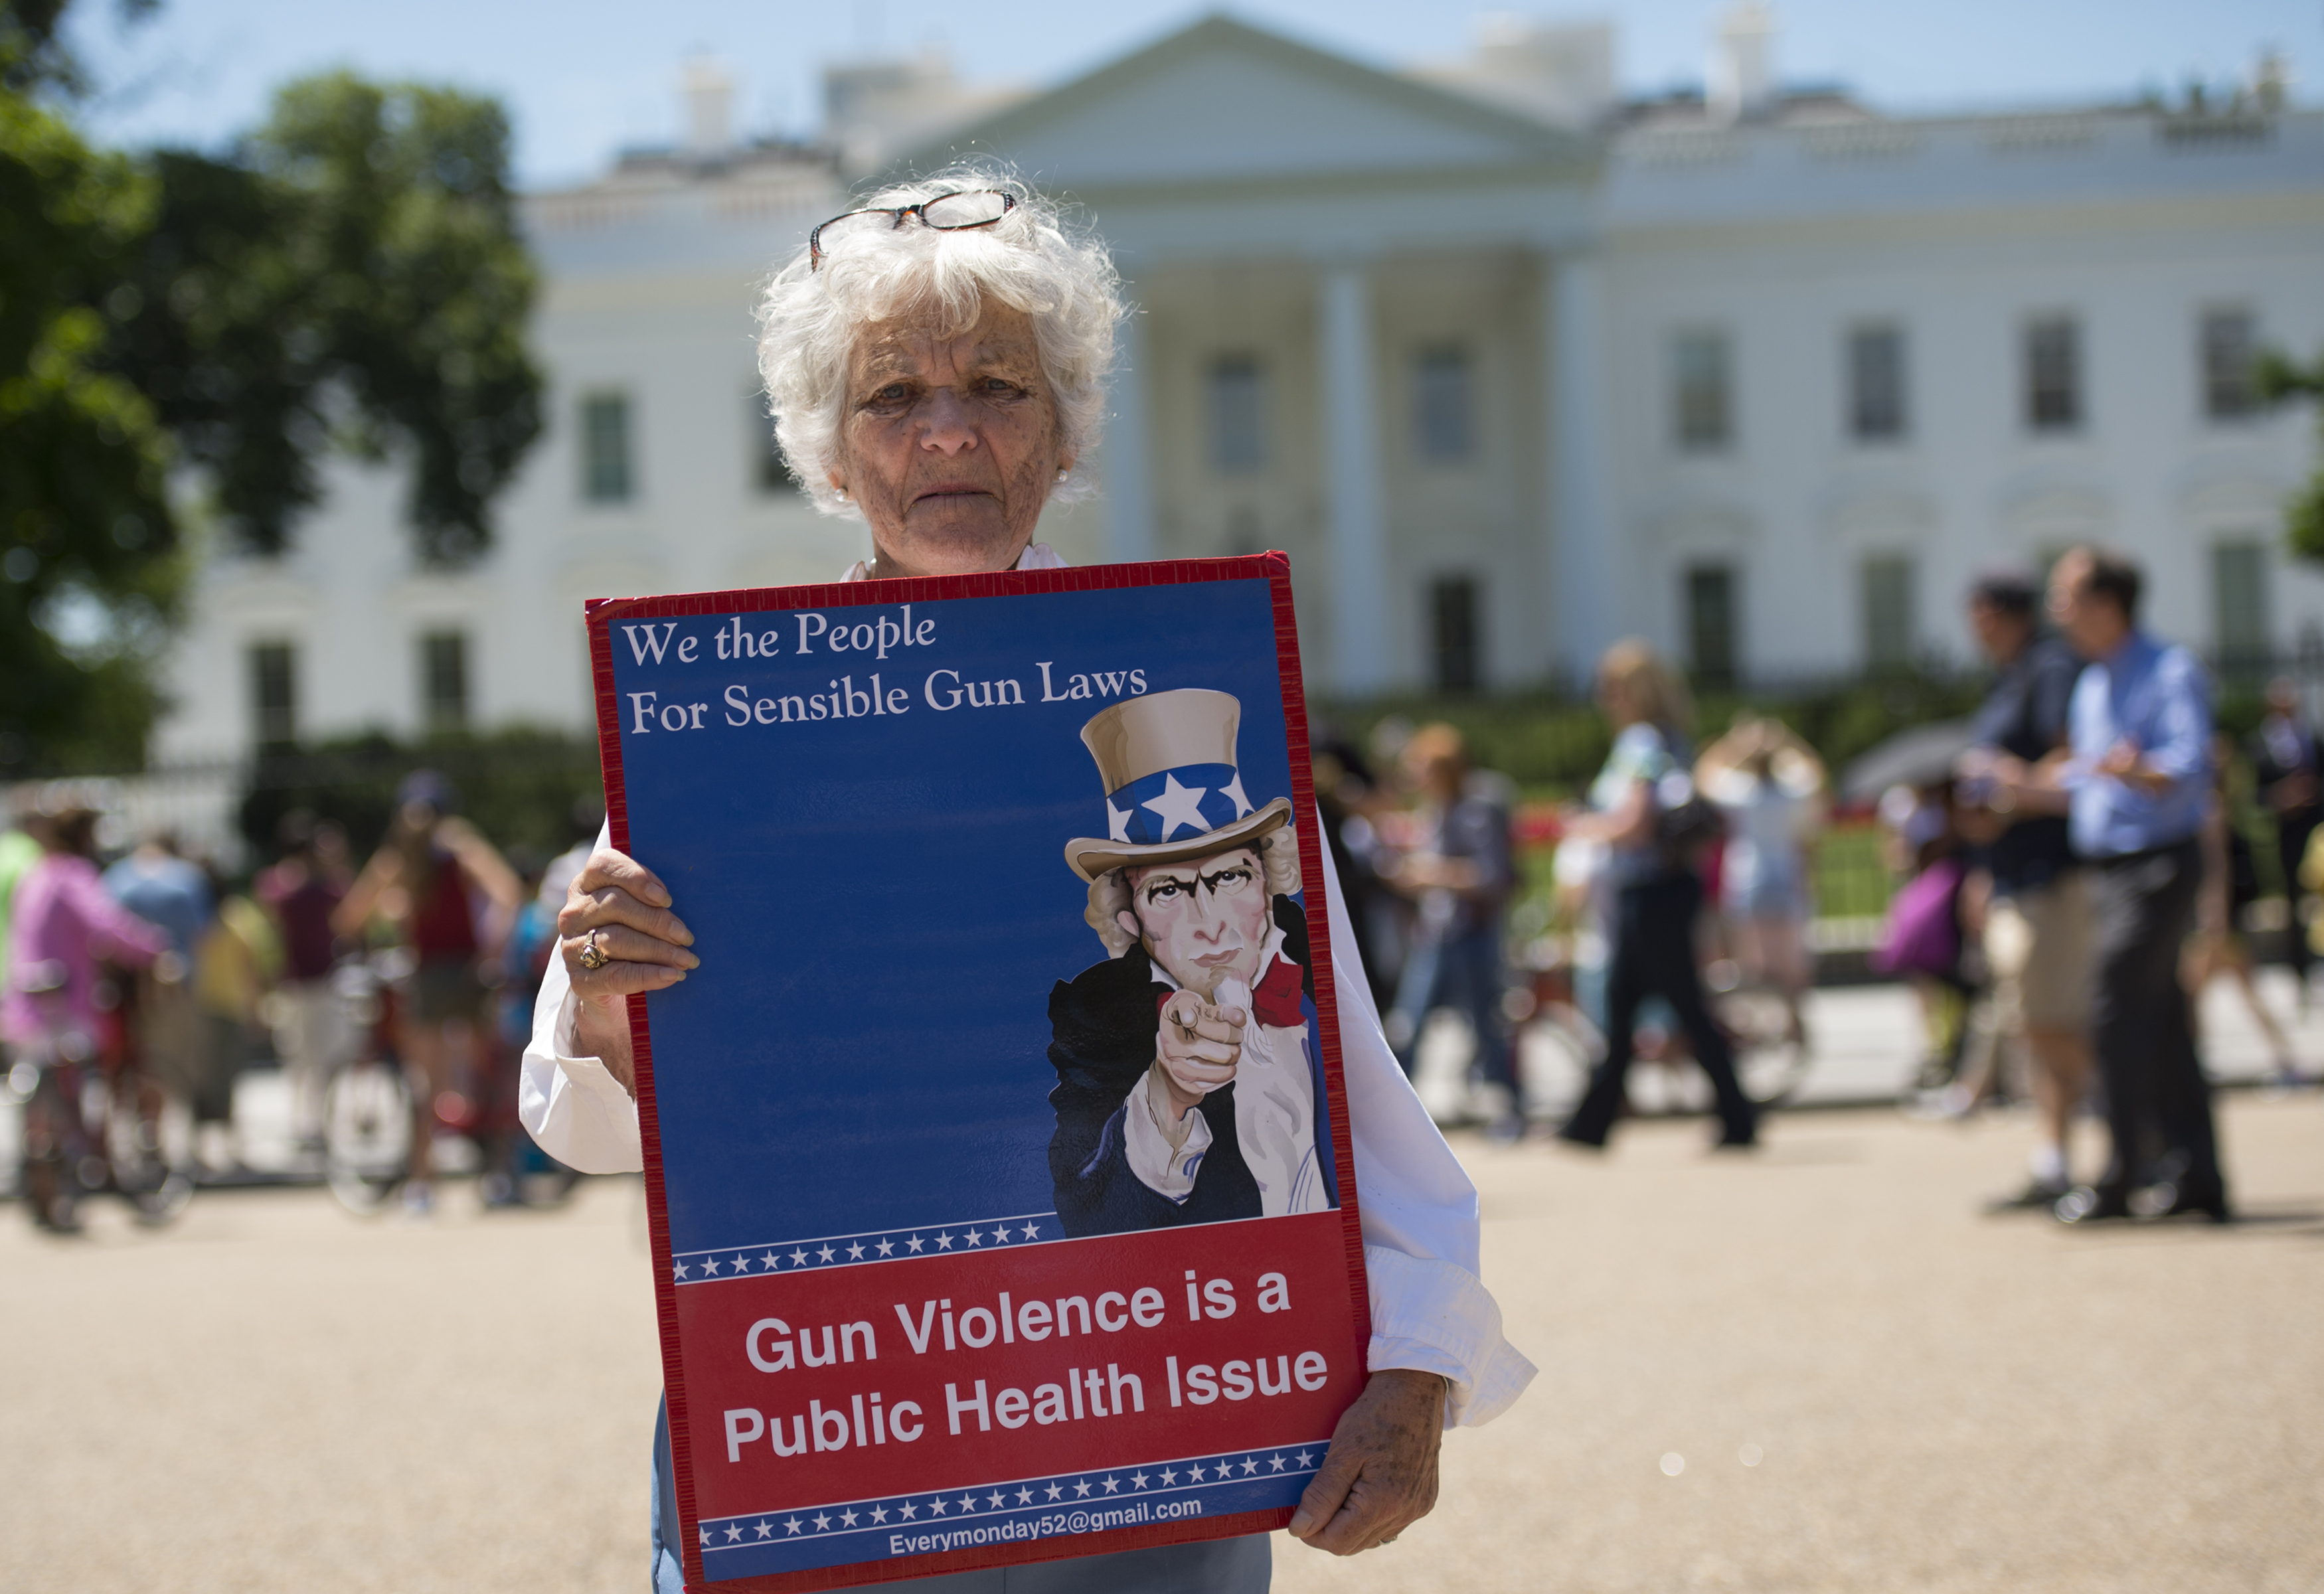 A sign to protest gun violence and call for sensible gun laws outside the White House June 13, 2016, in Washington, DC. (Photo by MOLLY RILEY/AFP/Getty Images)